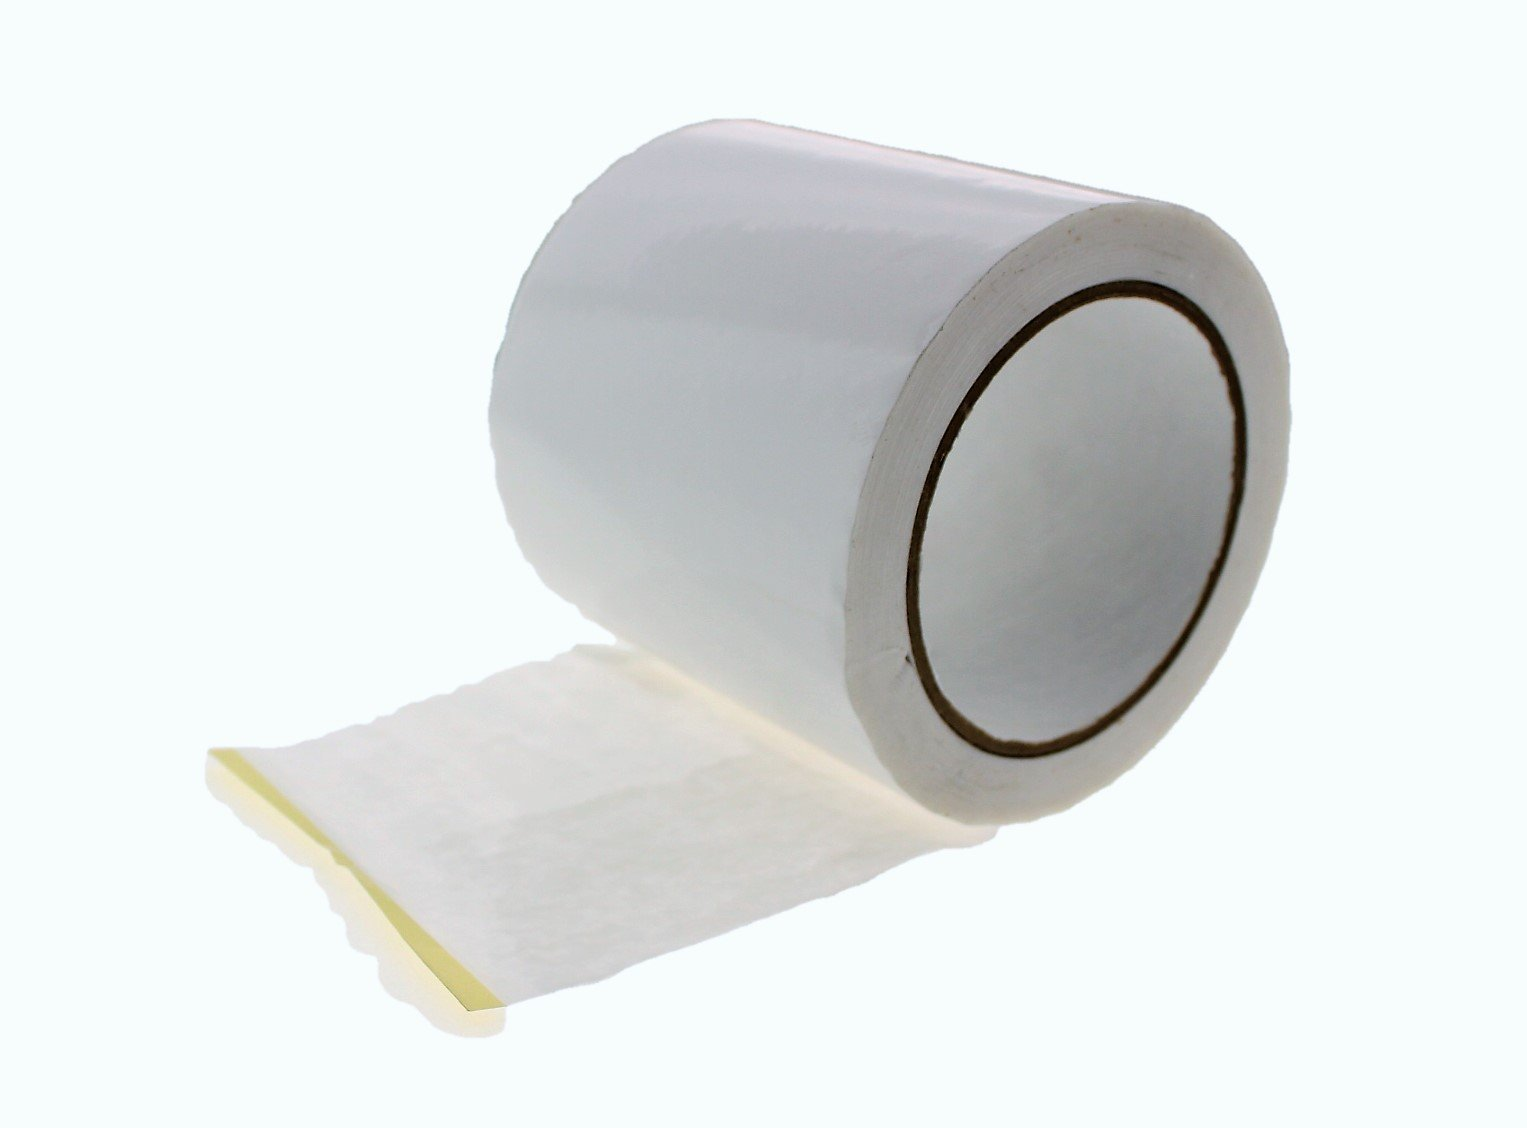 4'' in x 60 yd White House Wrap Tape Sheathing Building Wrapping Housewrap Sheath Tape Insulation Seaming Plastic Sheets FOR Sealing TYVEK in Construction or Moisture Dust barrier Asbestos Abatement